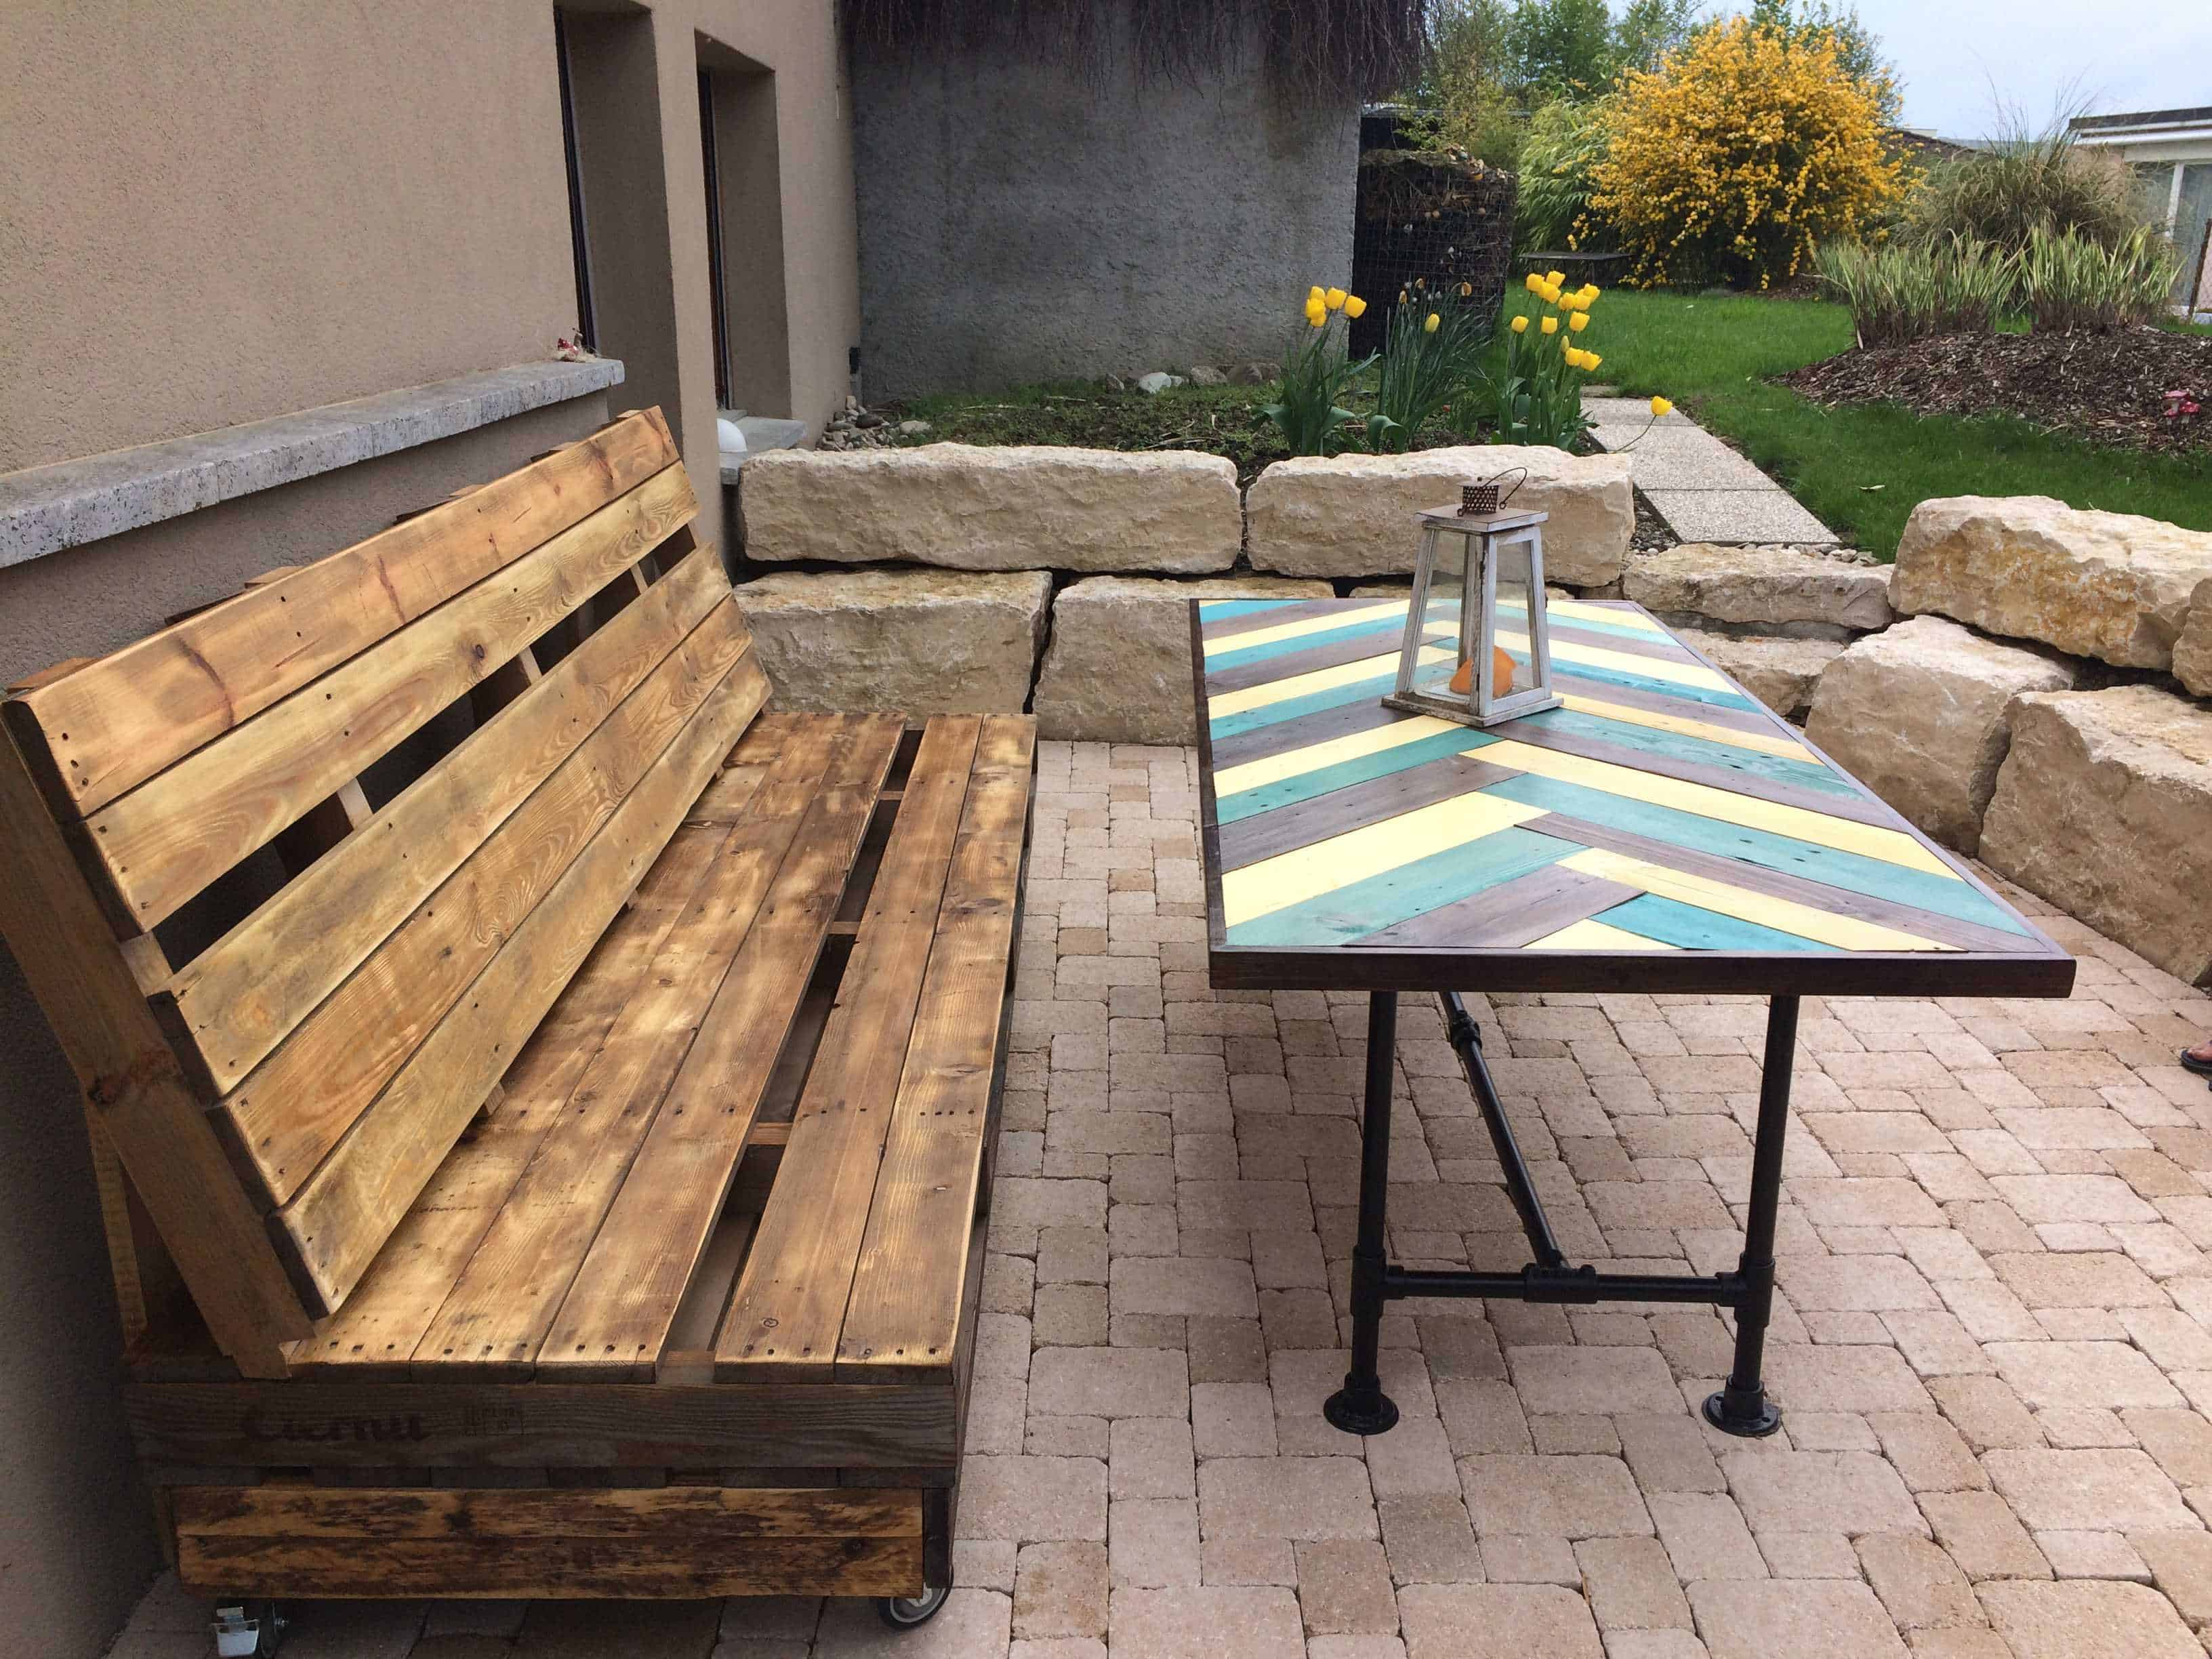 Terrace pallet bench table pallet ideas 1001 pallets - Terrasse en palette de recup ...